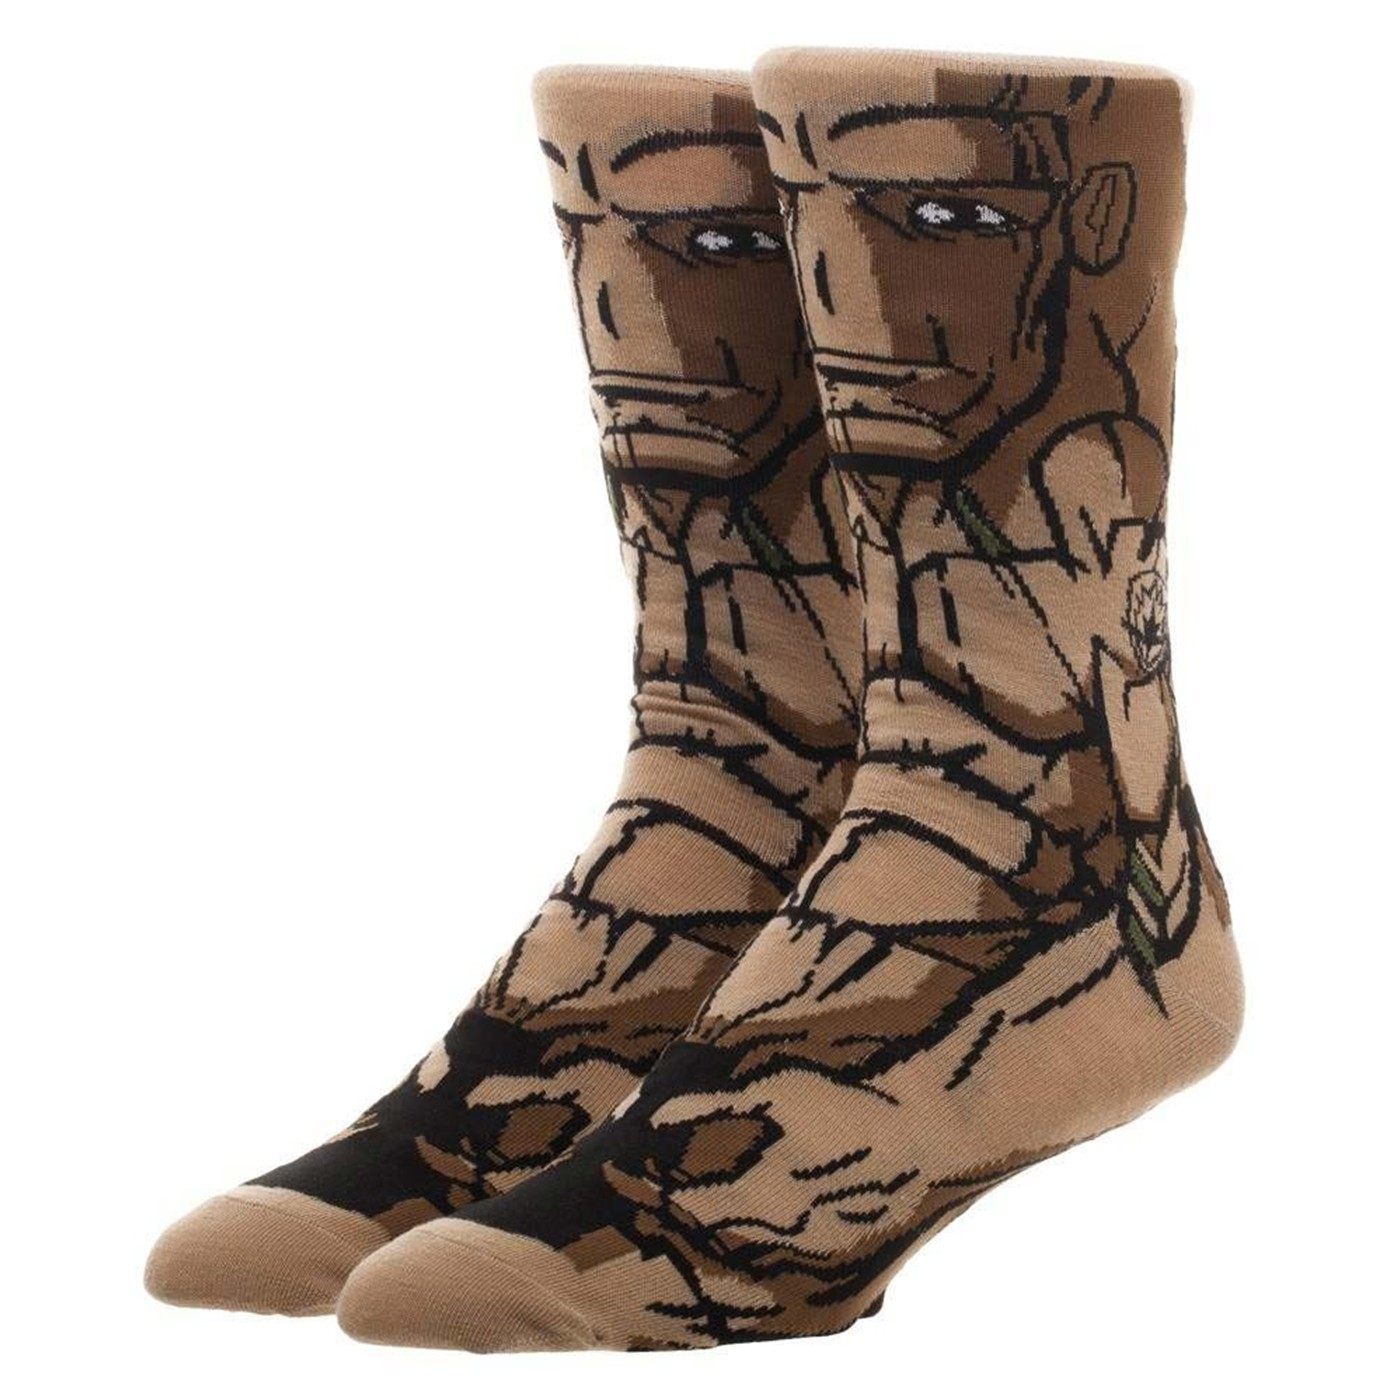 Guardians of the Galaxy Groot Character Crew Sock